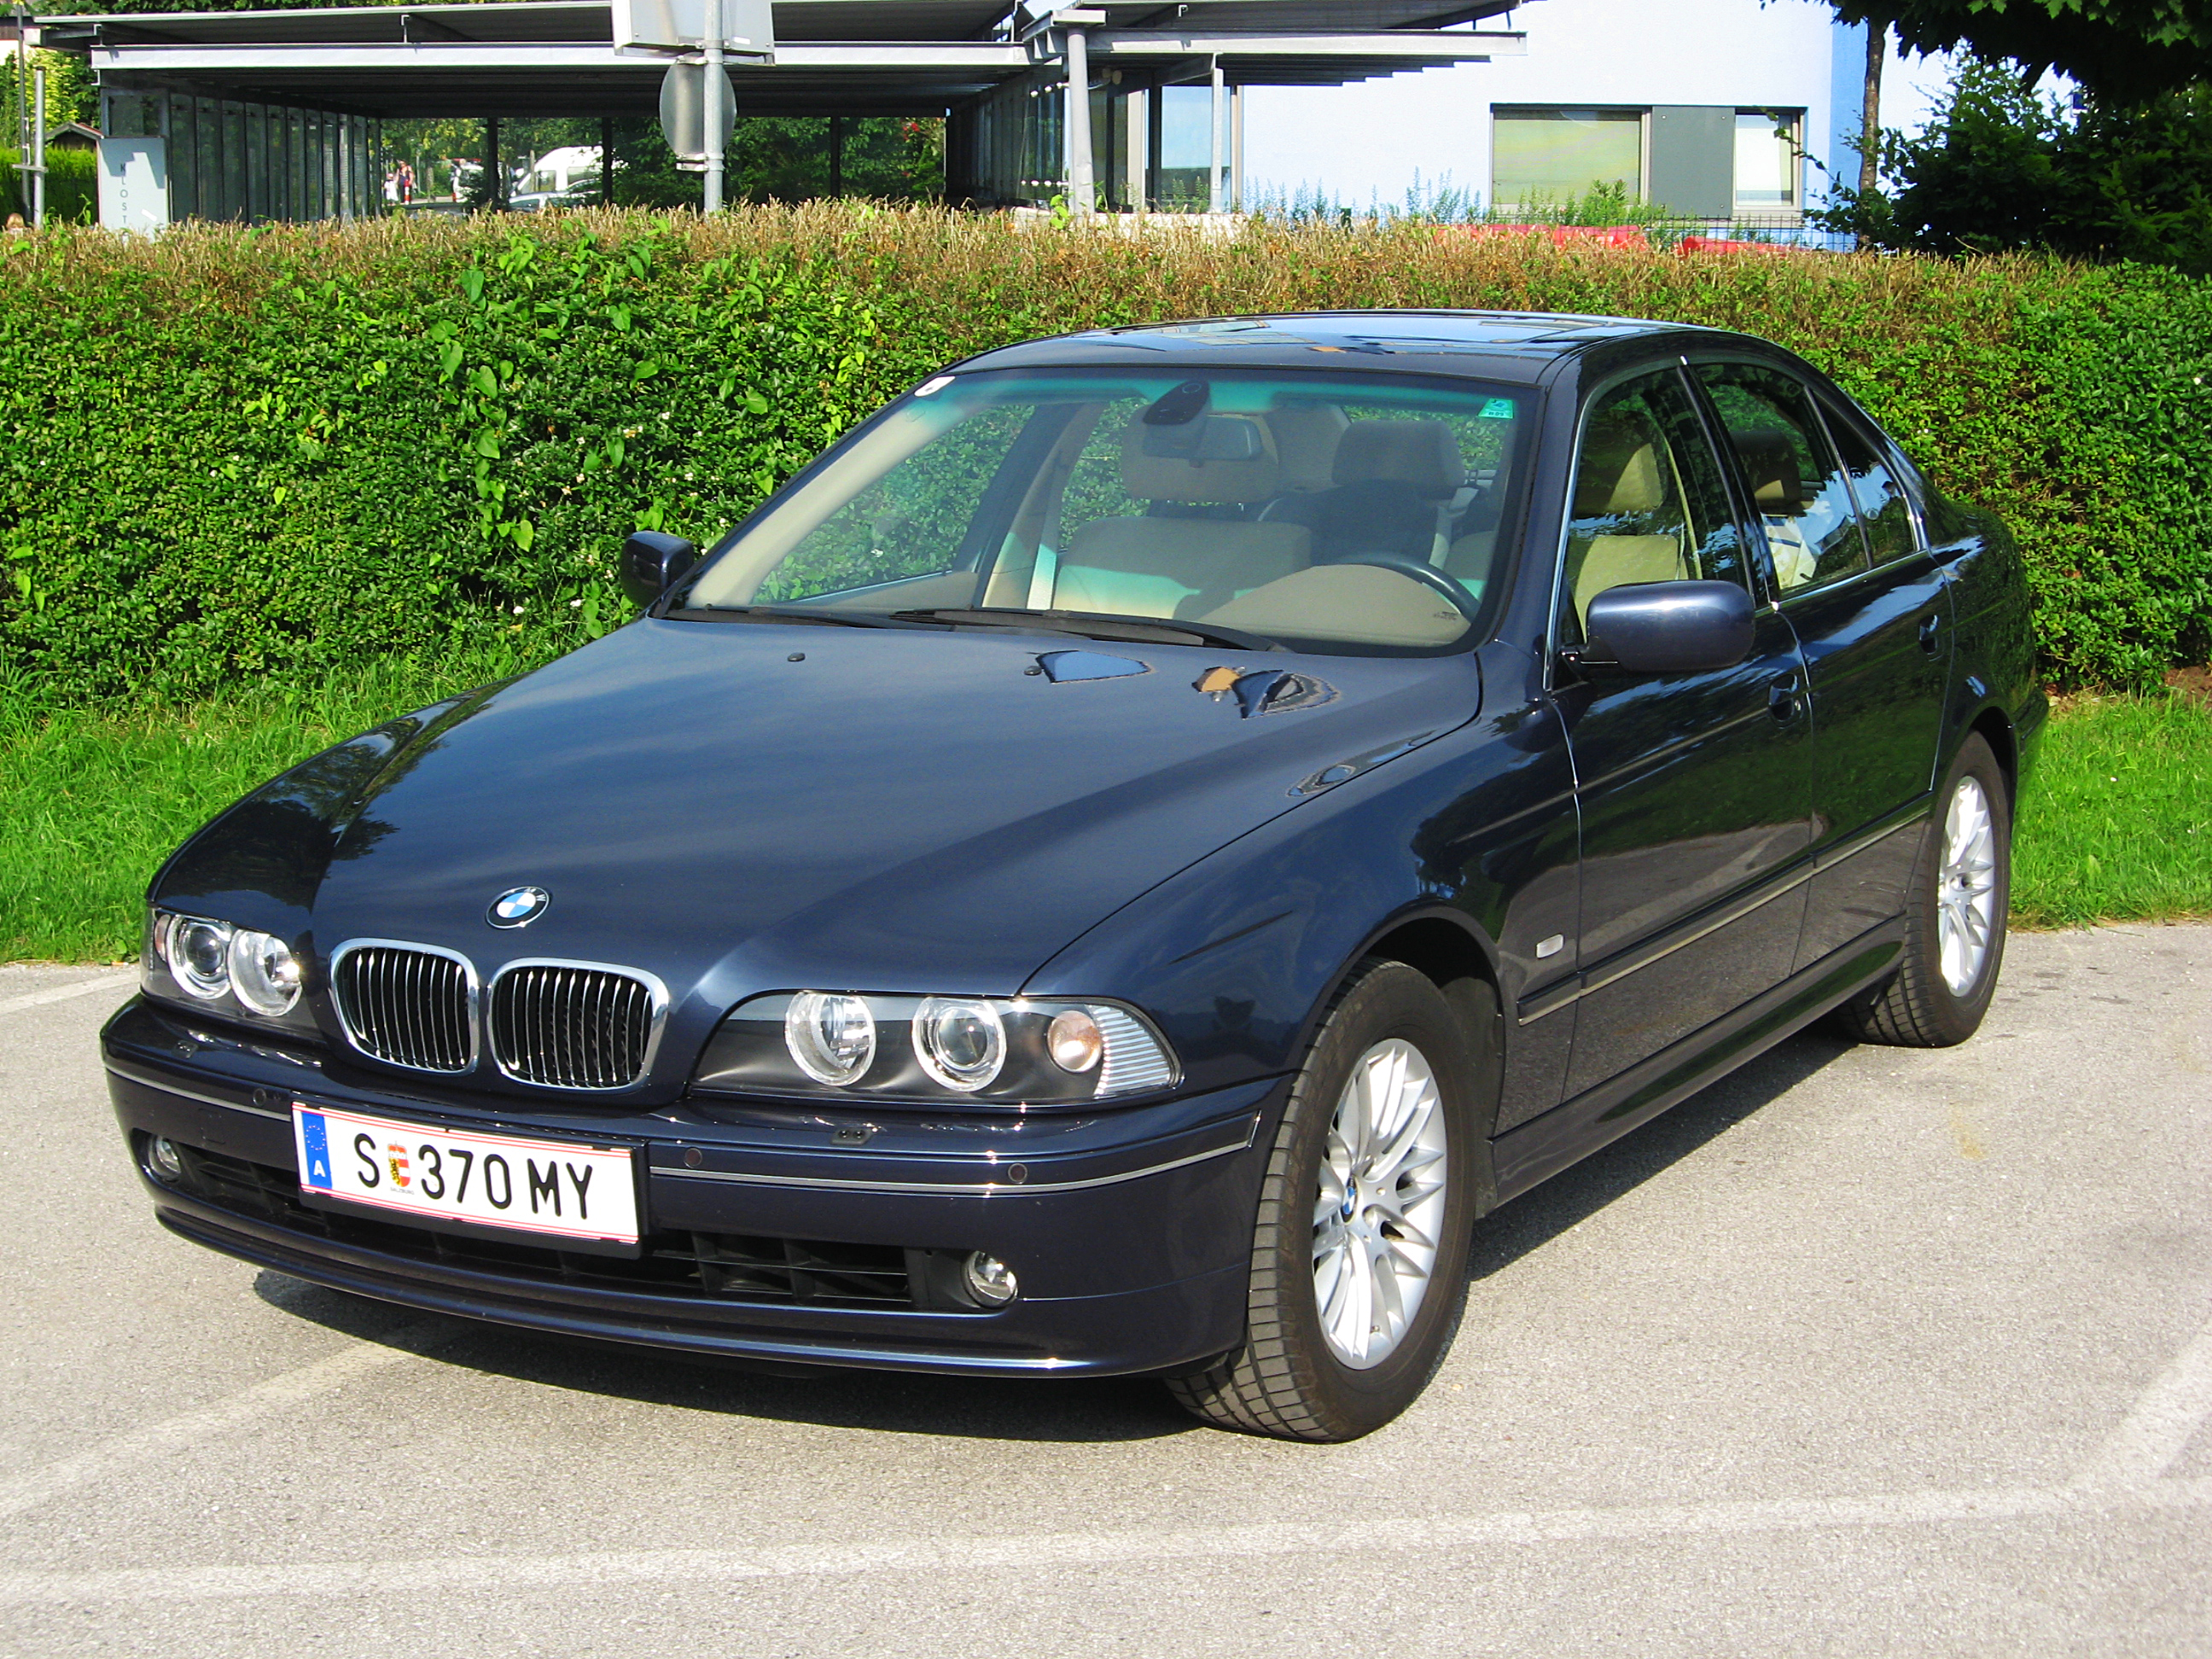 2001 Bmw 5er (e39) - pictures, information and specs ...